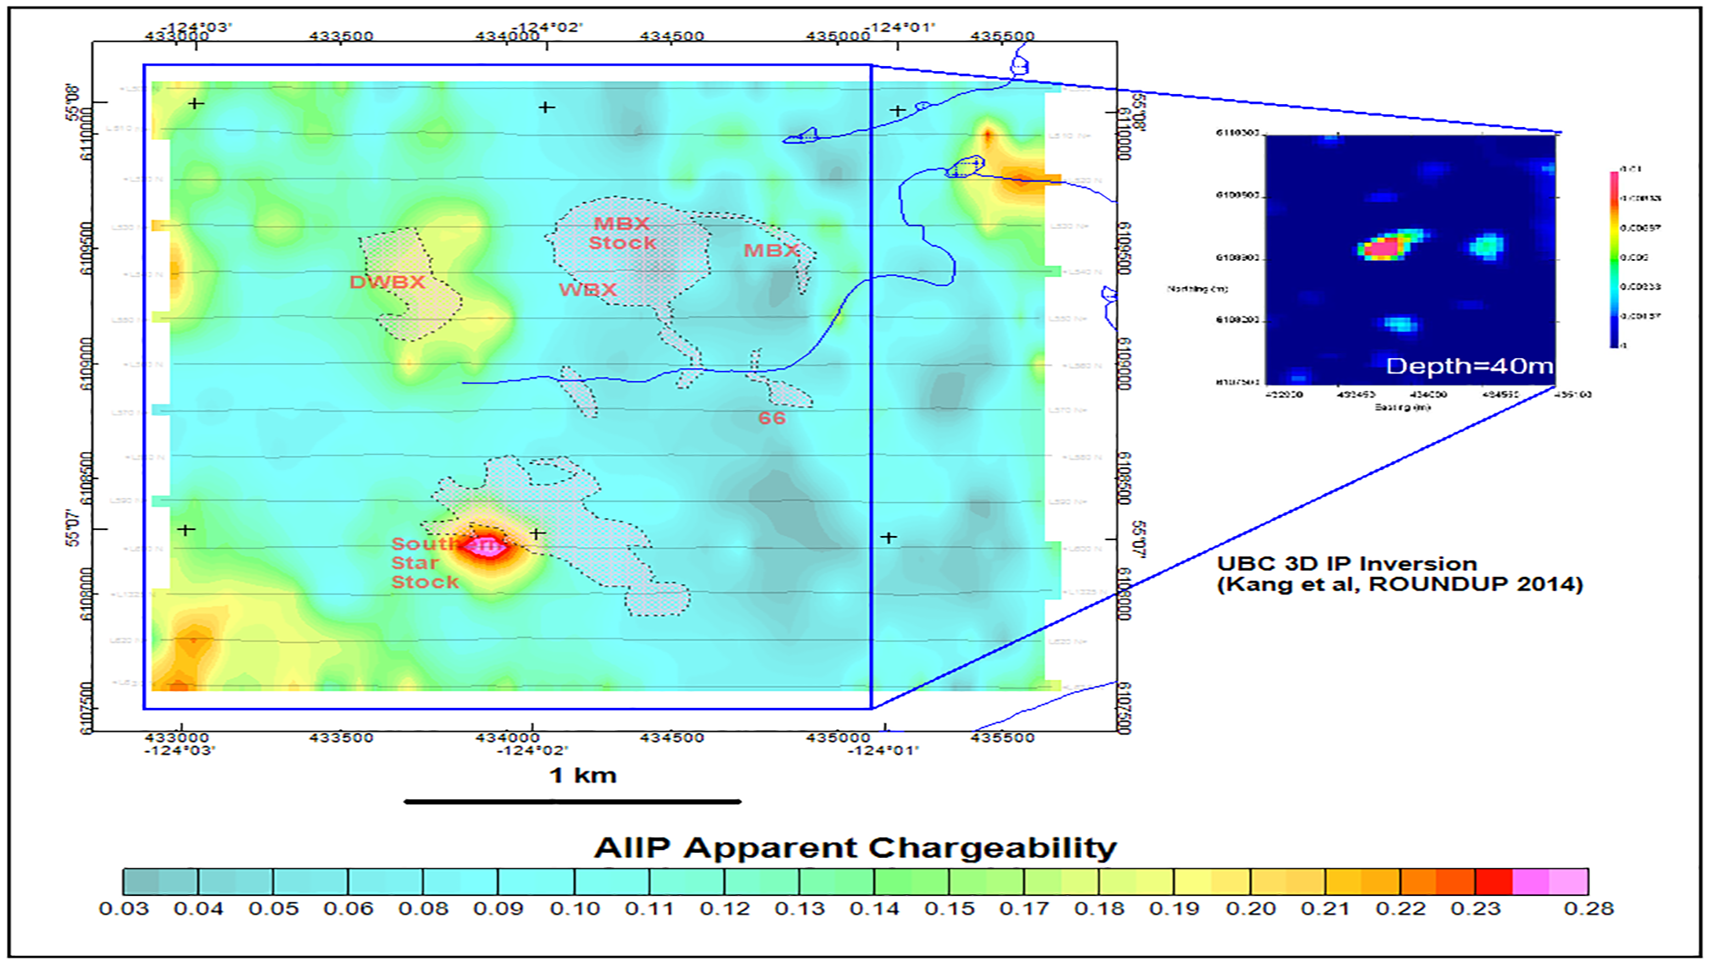 Figure 4: Mt. Milligan AIIP apparent chargeability.